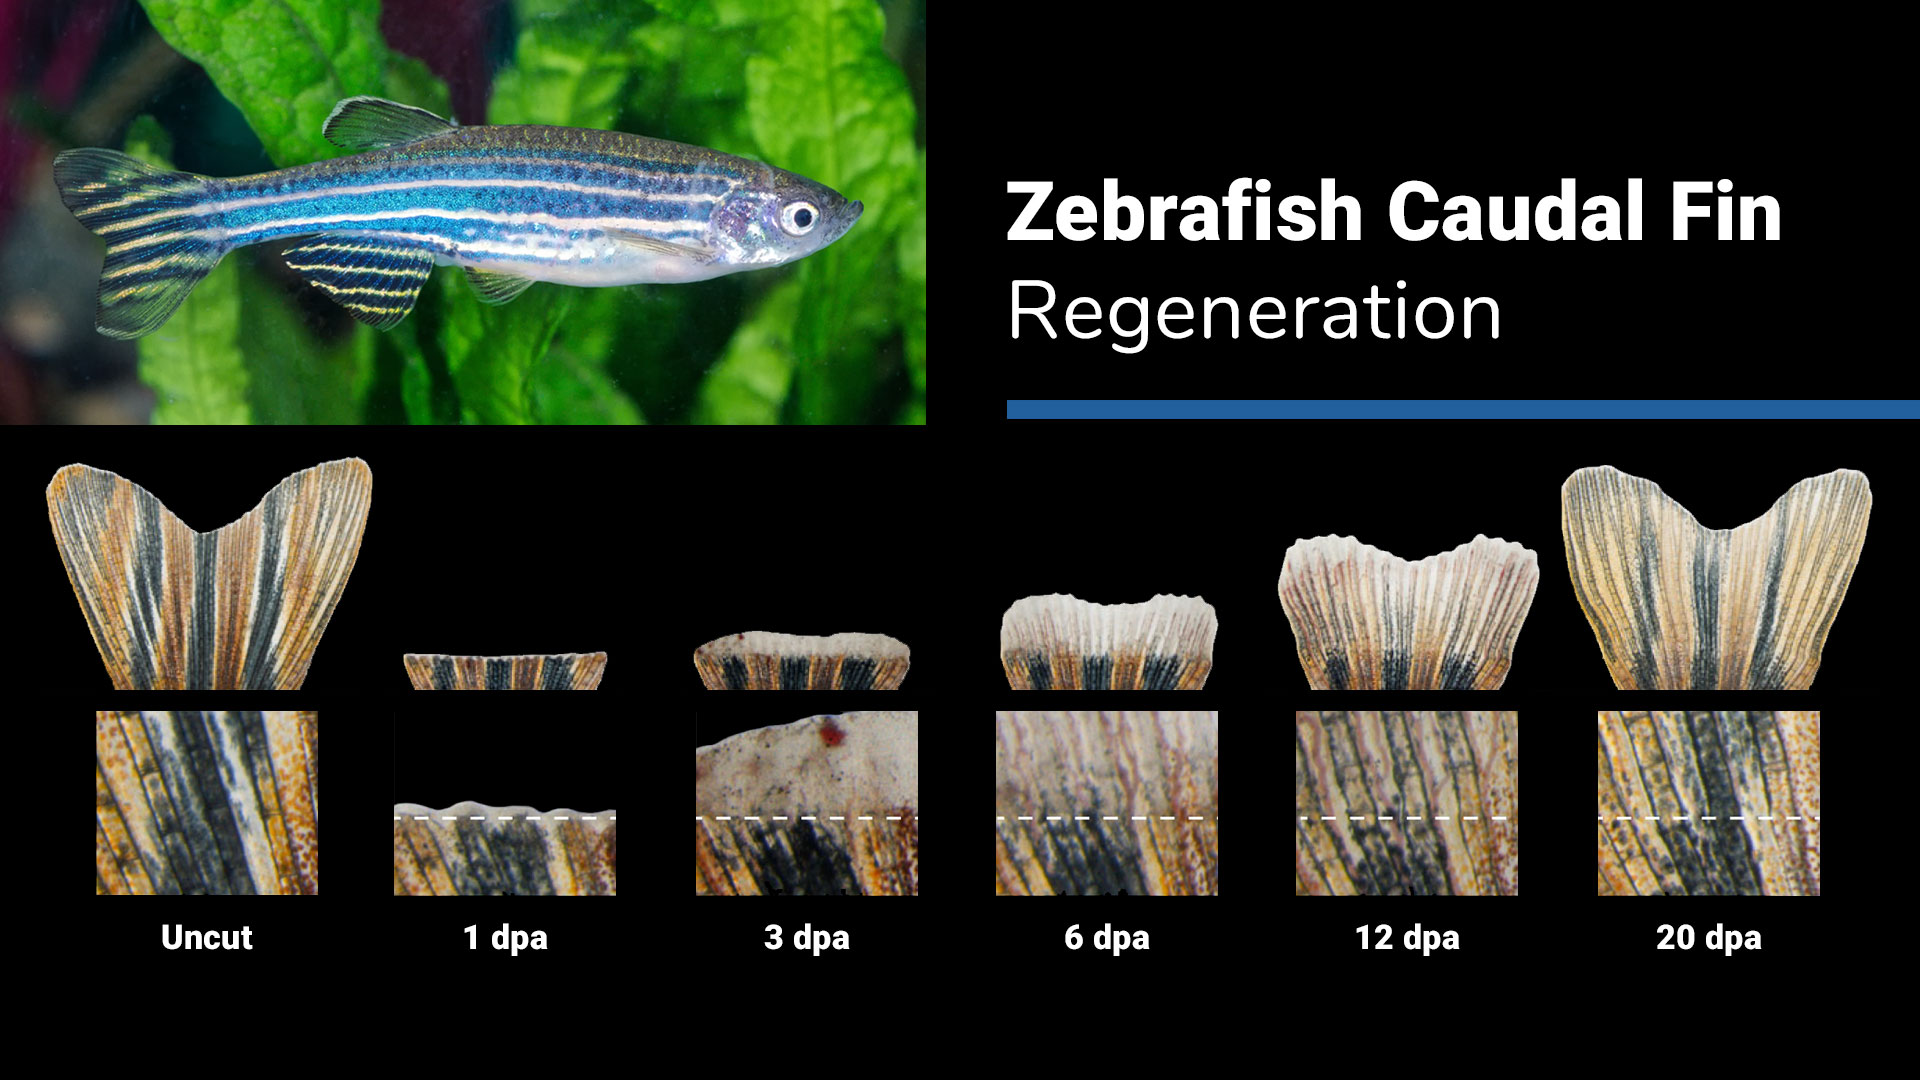 Zebrafish Caudal Fin Regeneration: A blue-and-white-striped zebrafish and images of a fin, shown in stages, which was lost and is regenerating or growing back.